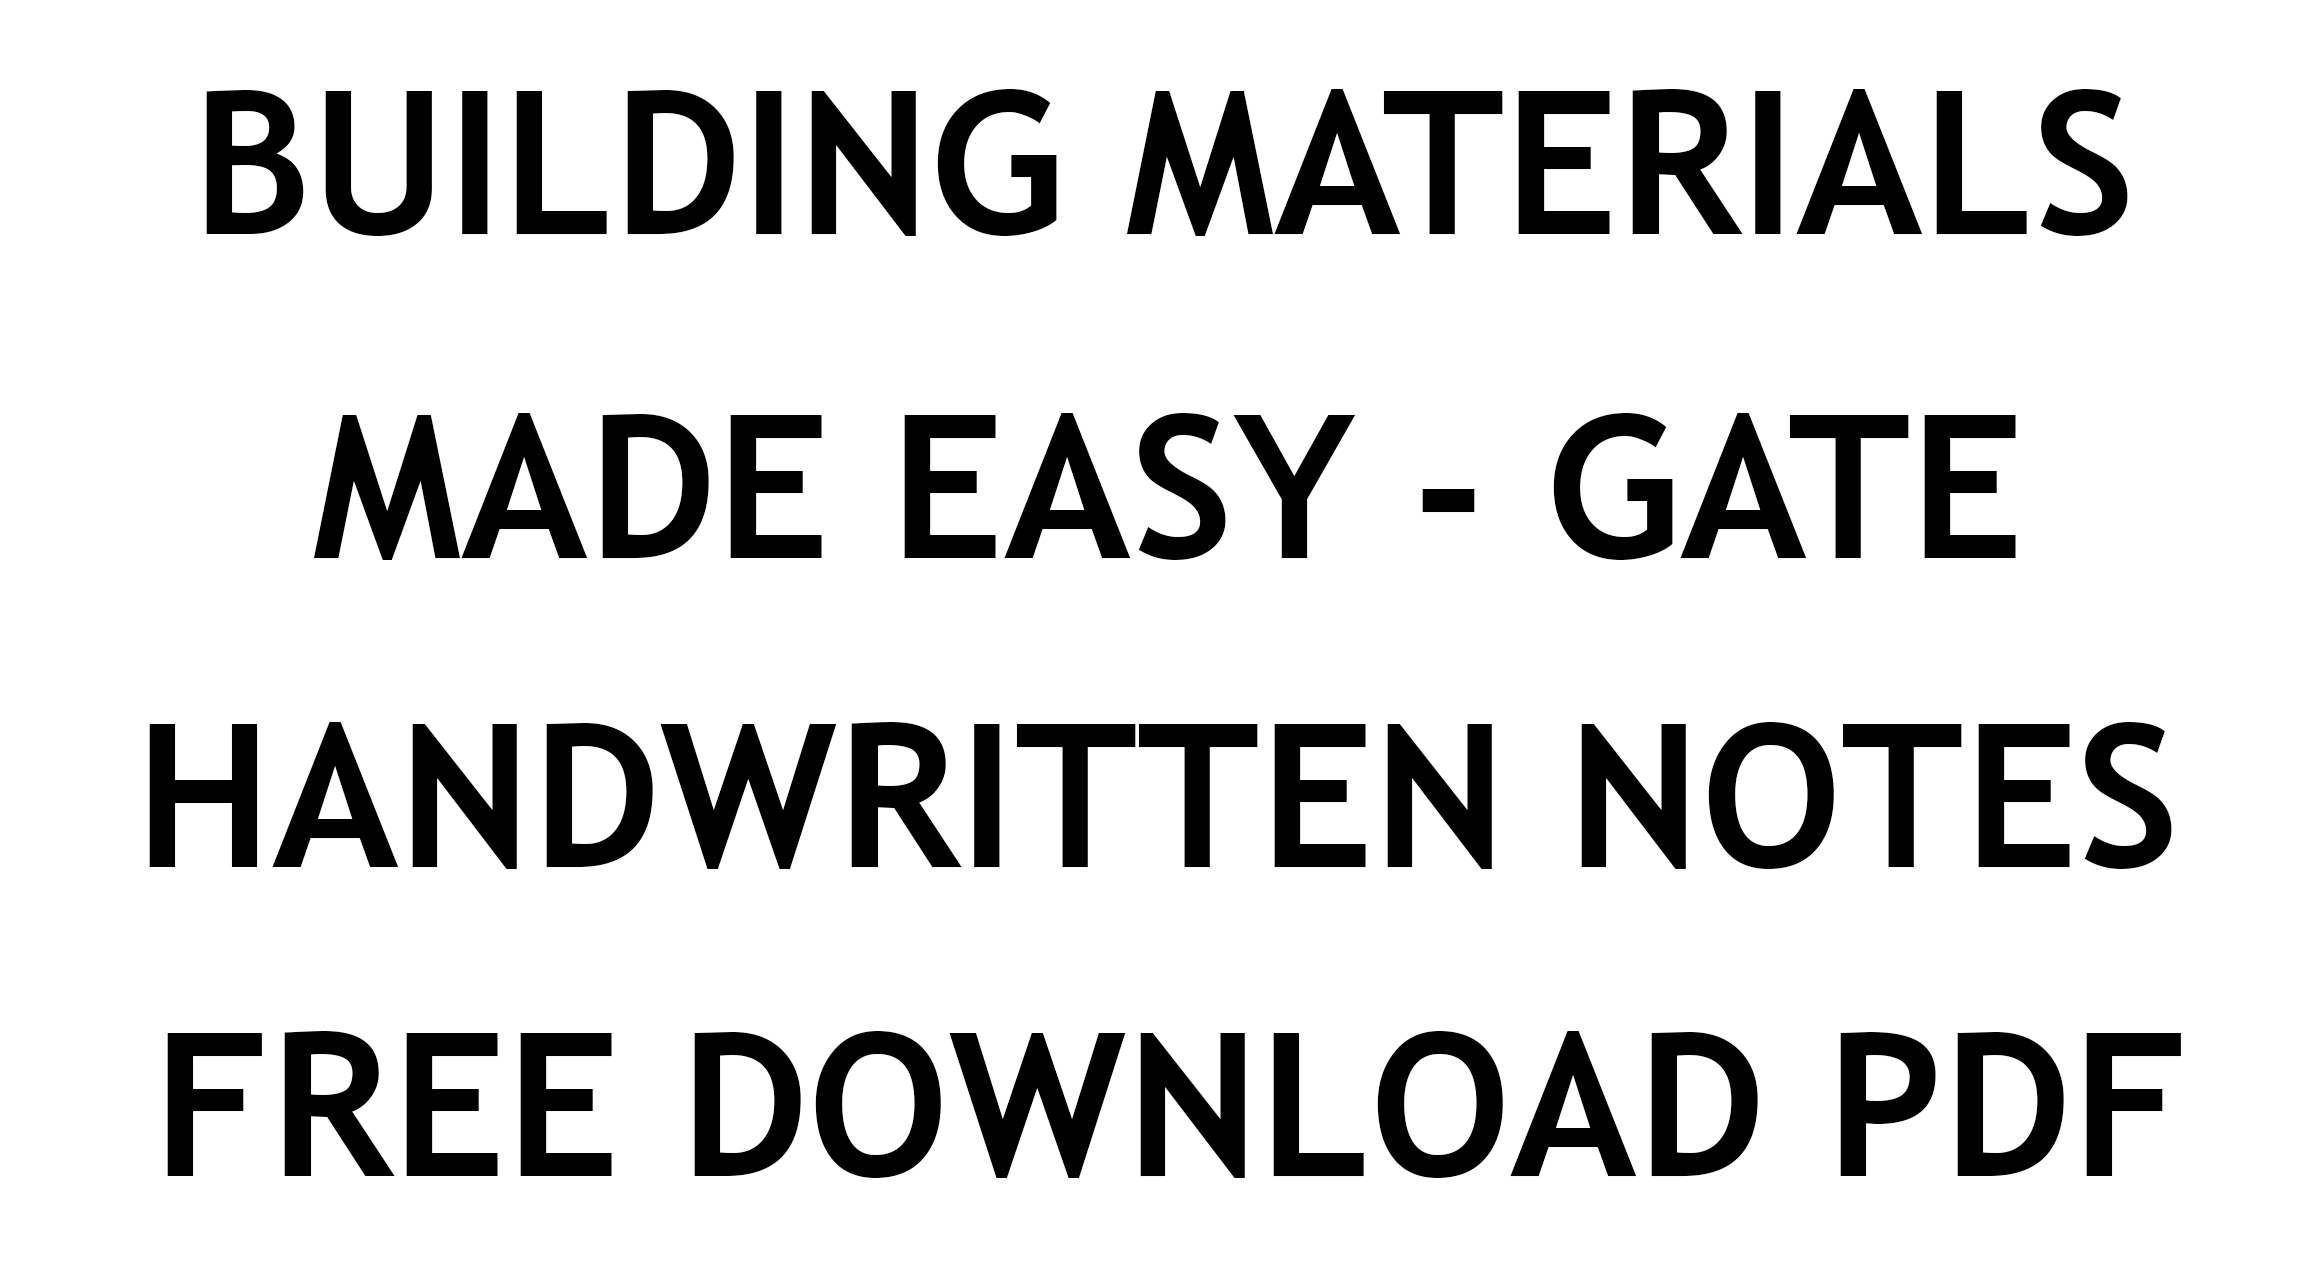 Building Materials Made Easy GATE Notes Free Download PDF